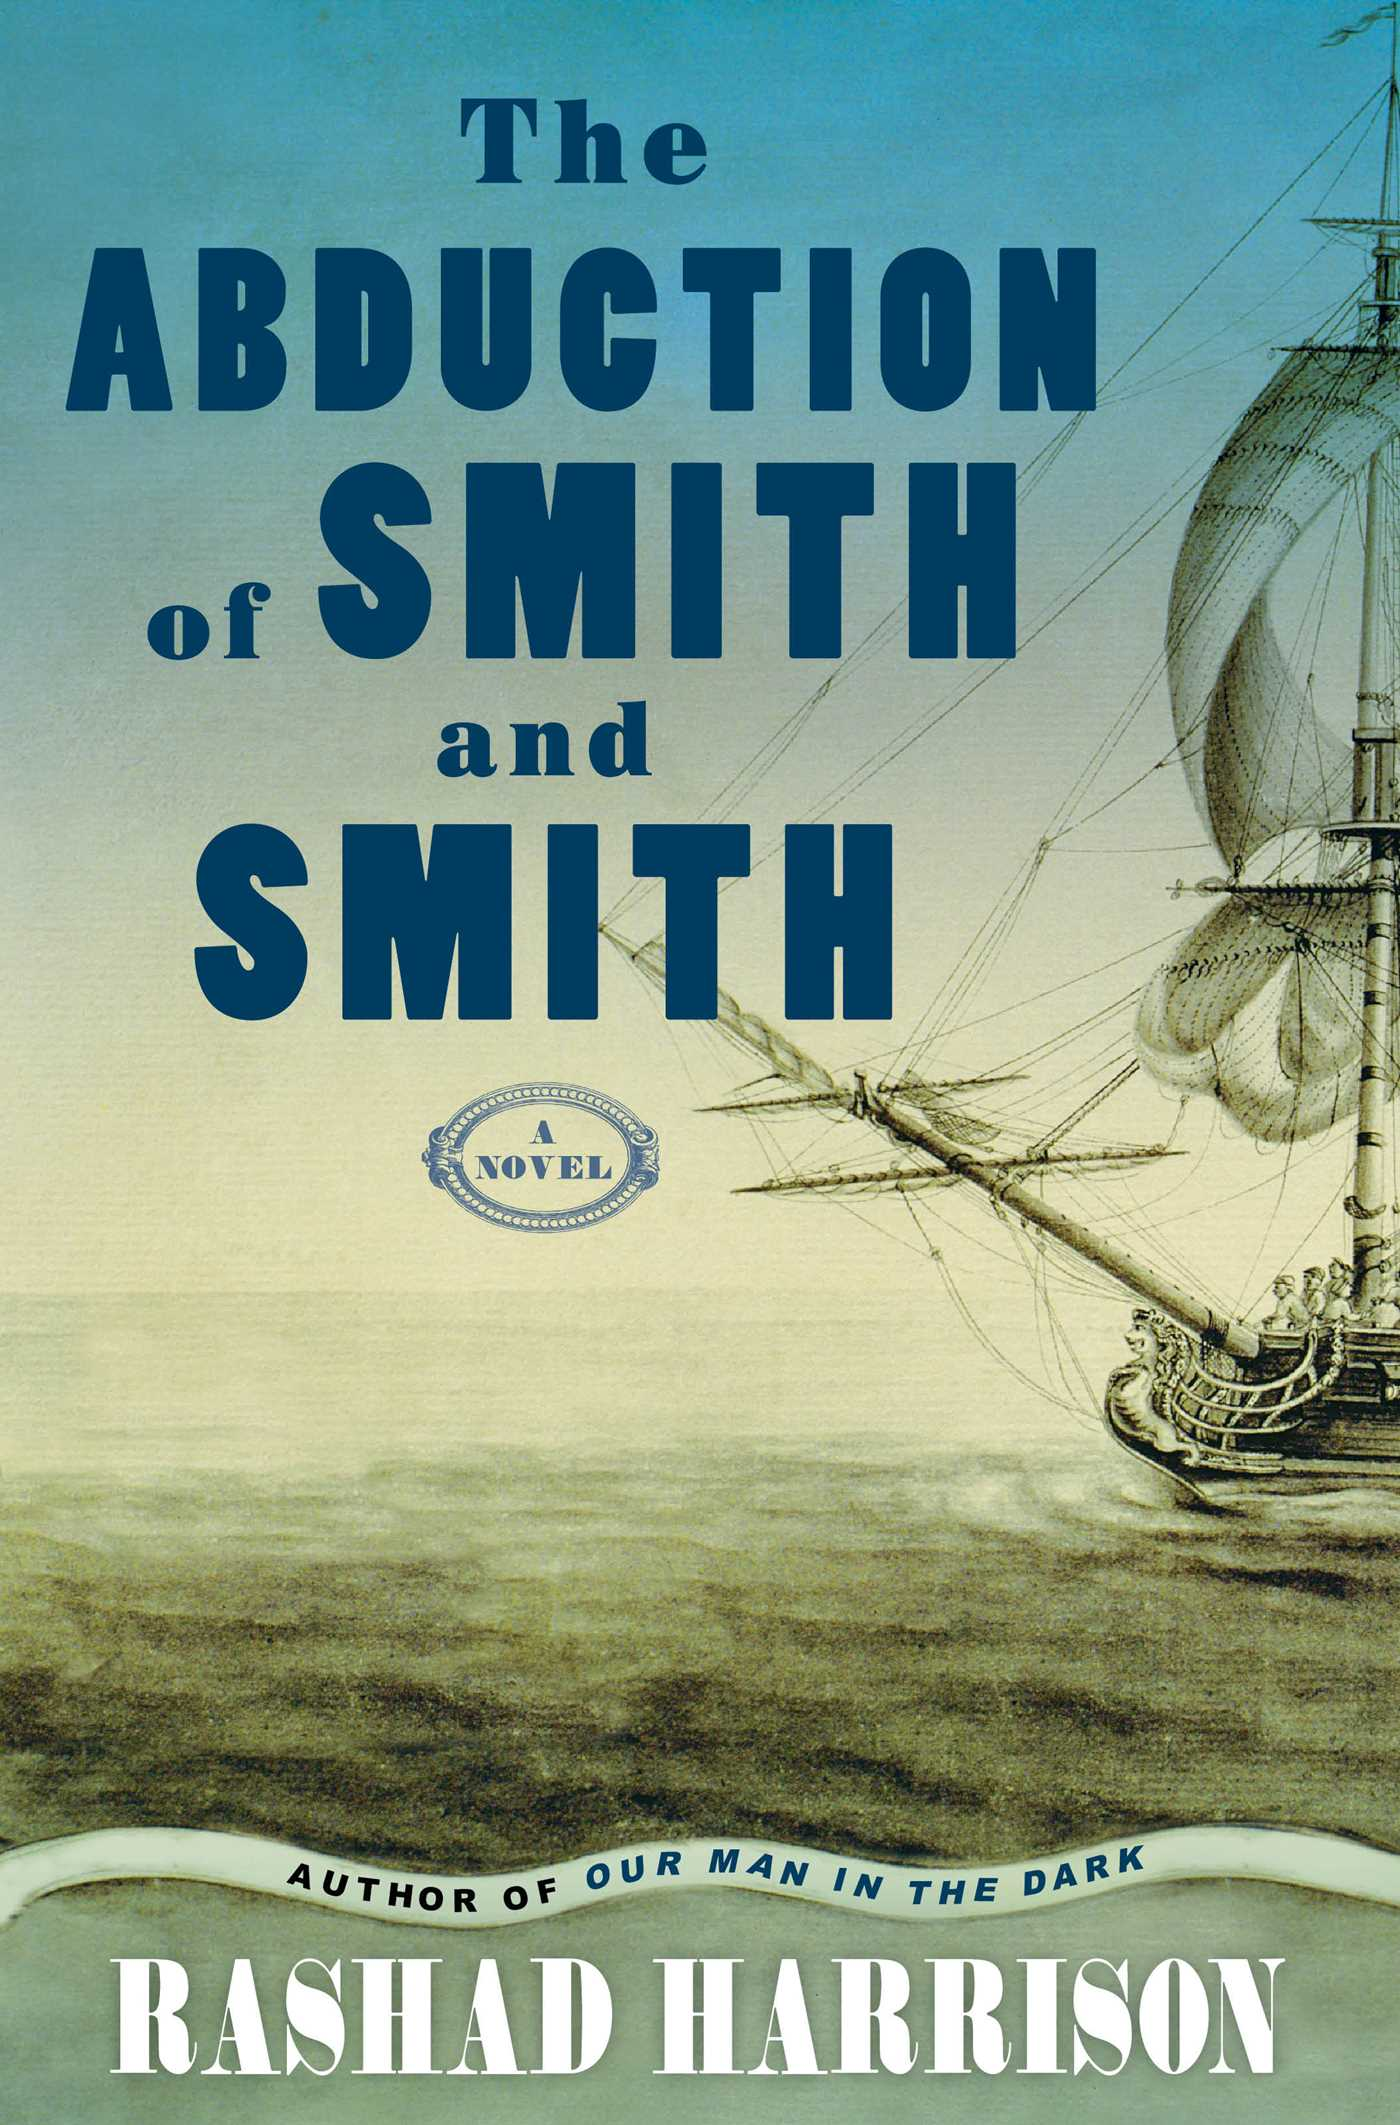 Abduction-of-smith-and-smith-9781451625783_hr